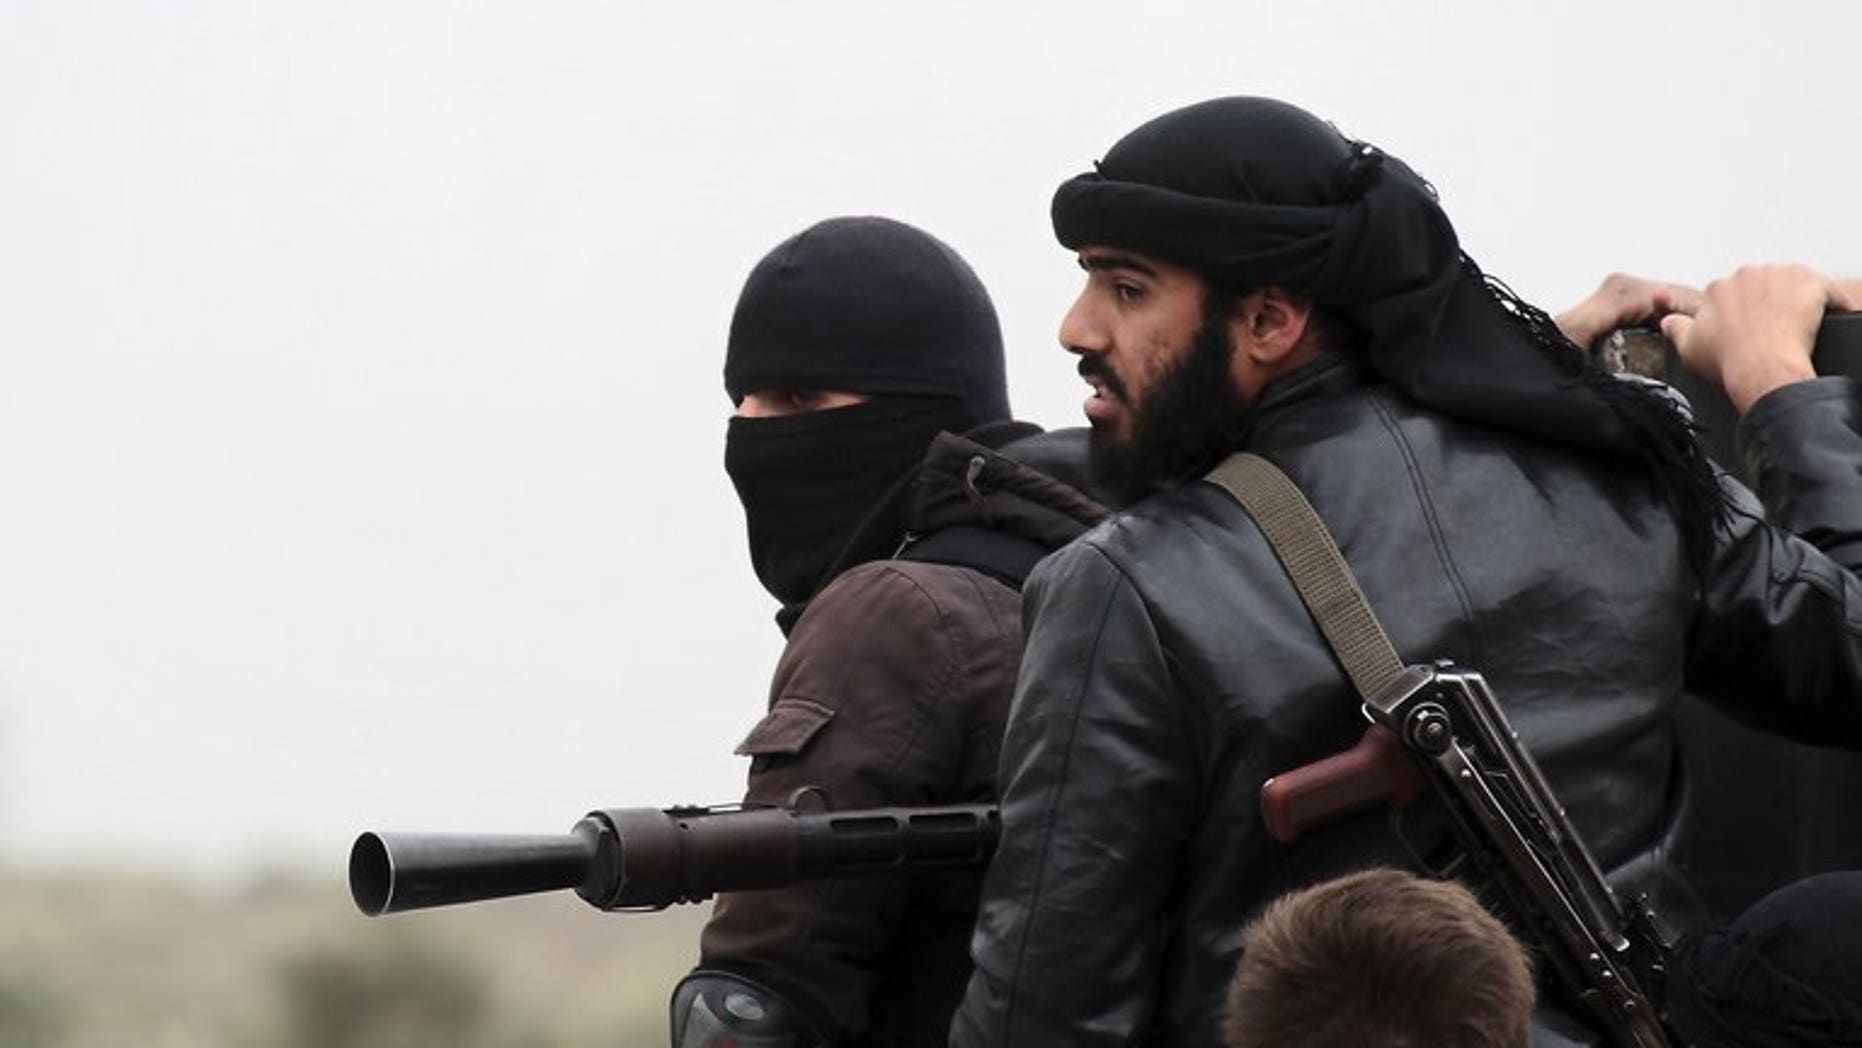 Fighters with the Al-Qaeda-linked Al-Nusra Front in the Syrian village of Aziza, on April 4, 2013. A military tribunal in Jordan has jailed six Muslim extremists for trying to join the Al-Nusra Front to fight against Syrian President Bashar al-Assad's forces.